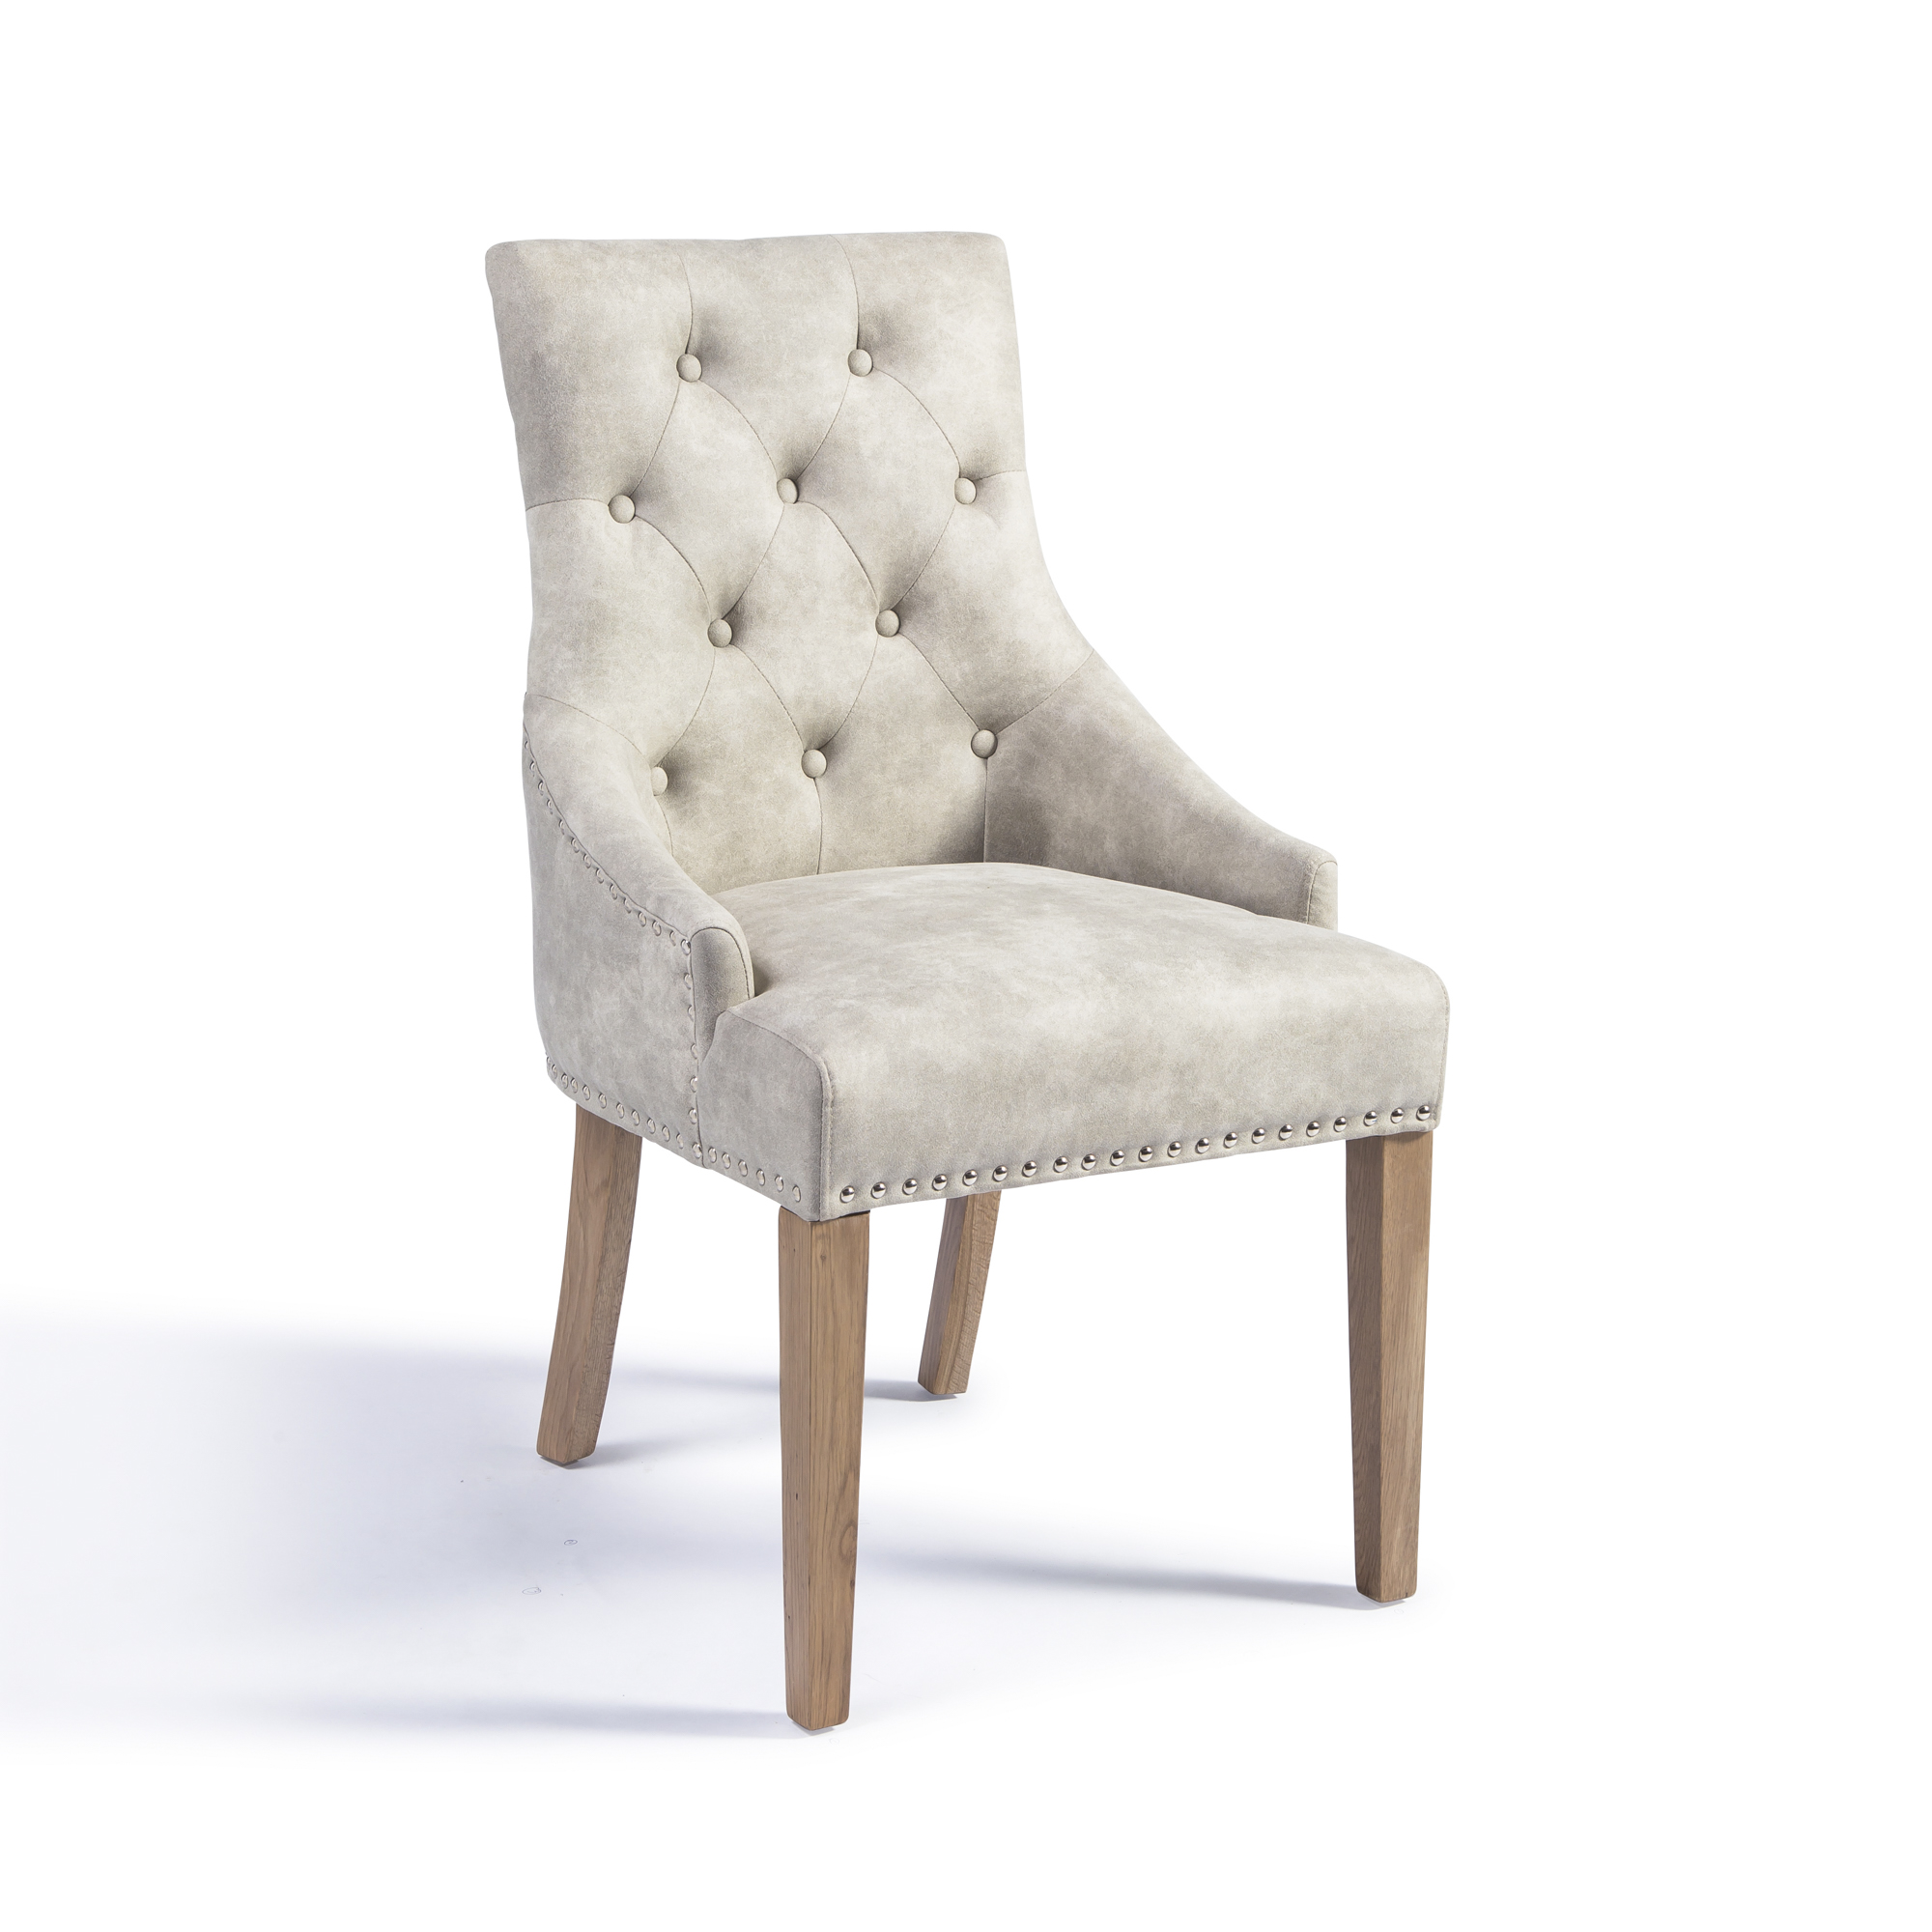 Chelsea Upholstered Scoop Dining Chair in Cream Buck Fabric with Hoop Handle and Oak Legs